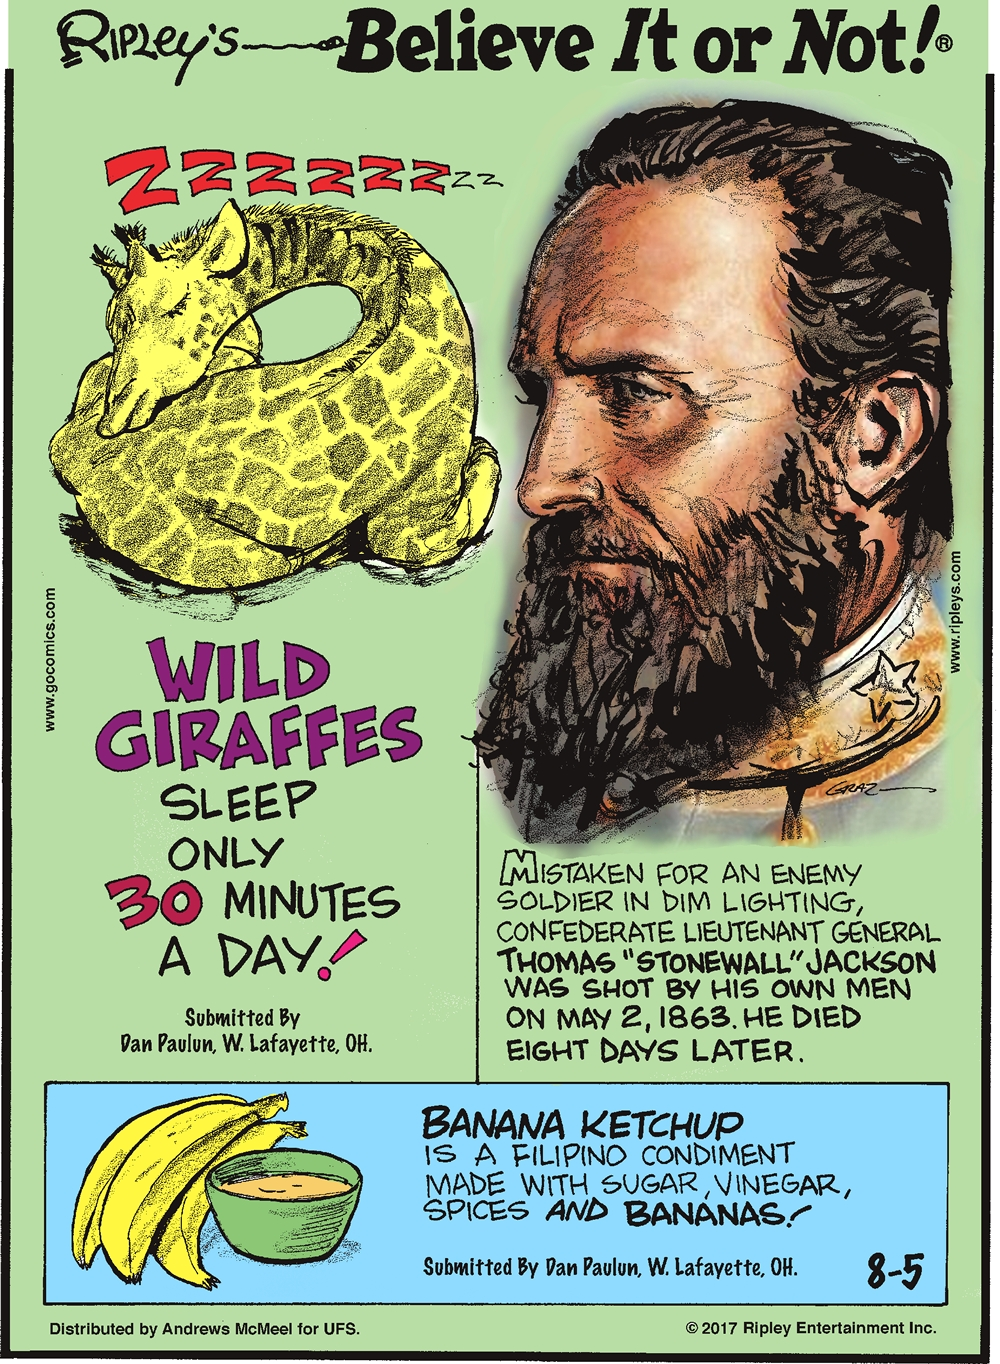 "Wild giraffes sleep only 30 minutes a day! Submitted by Dan Paulun, W. Lafayette, OH.-------------------- Mistaken for an enemy soldier in dim lighting, Confederate Lieutenant General Thomas ""Stonewall"" Jackson was shot by his own men on May 2, 1863. He died eight days later.-------------------- Banana ketchup is a Filipino condiment made with sugar, vinegar, spices and bananas! Submitted by Dan Paulun, W. Lafayette, OH."